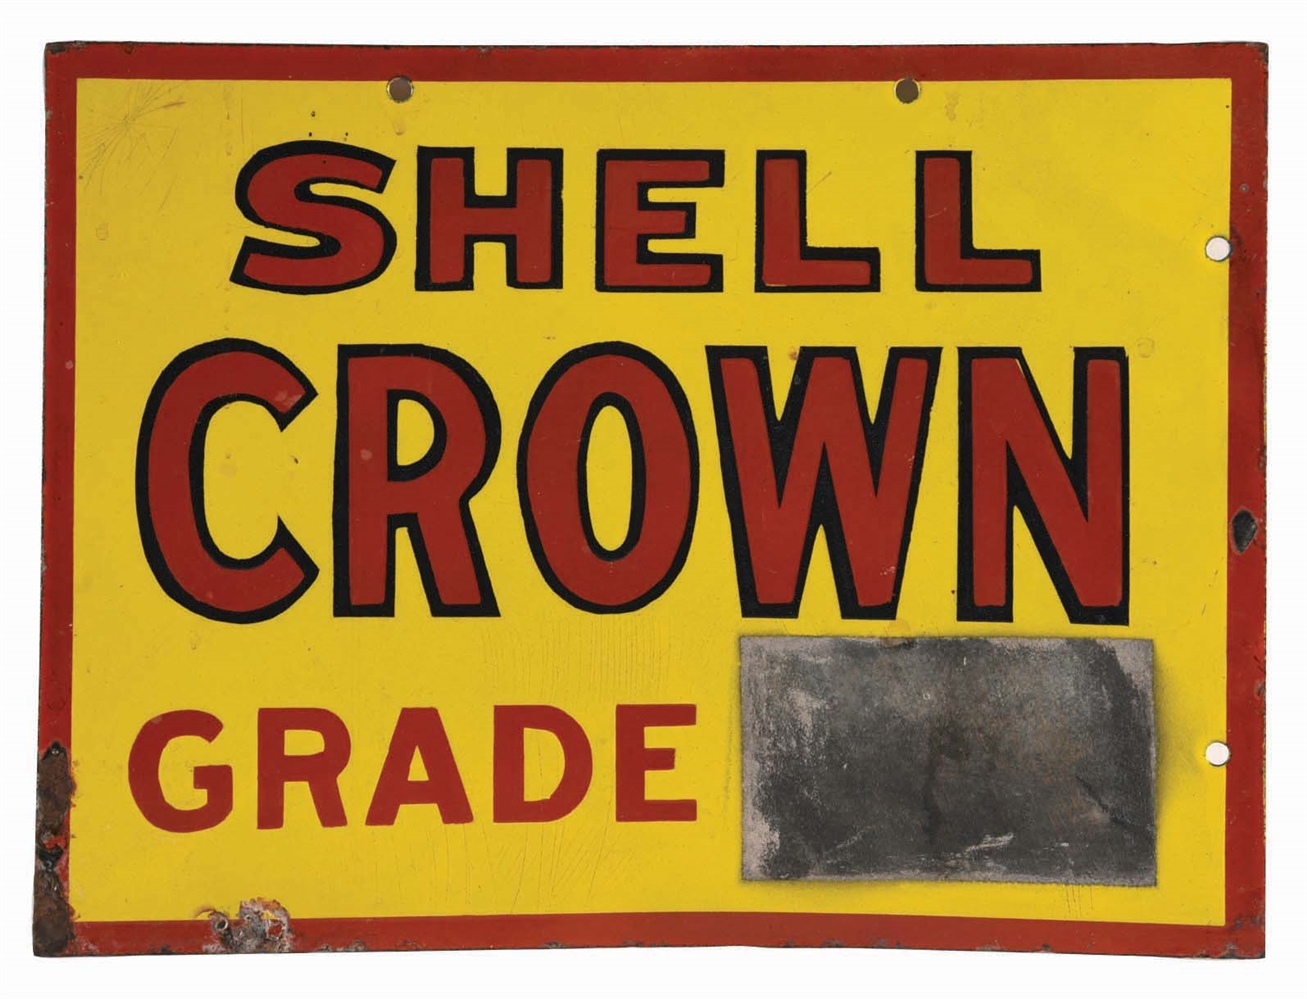 UNIQUE & RARE SHELL CROWN GRADE GASOLINE PORCELAIN PUMP PRICER SIGN W/ CHALKBOARD.